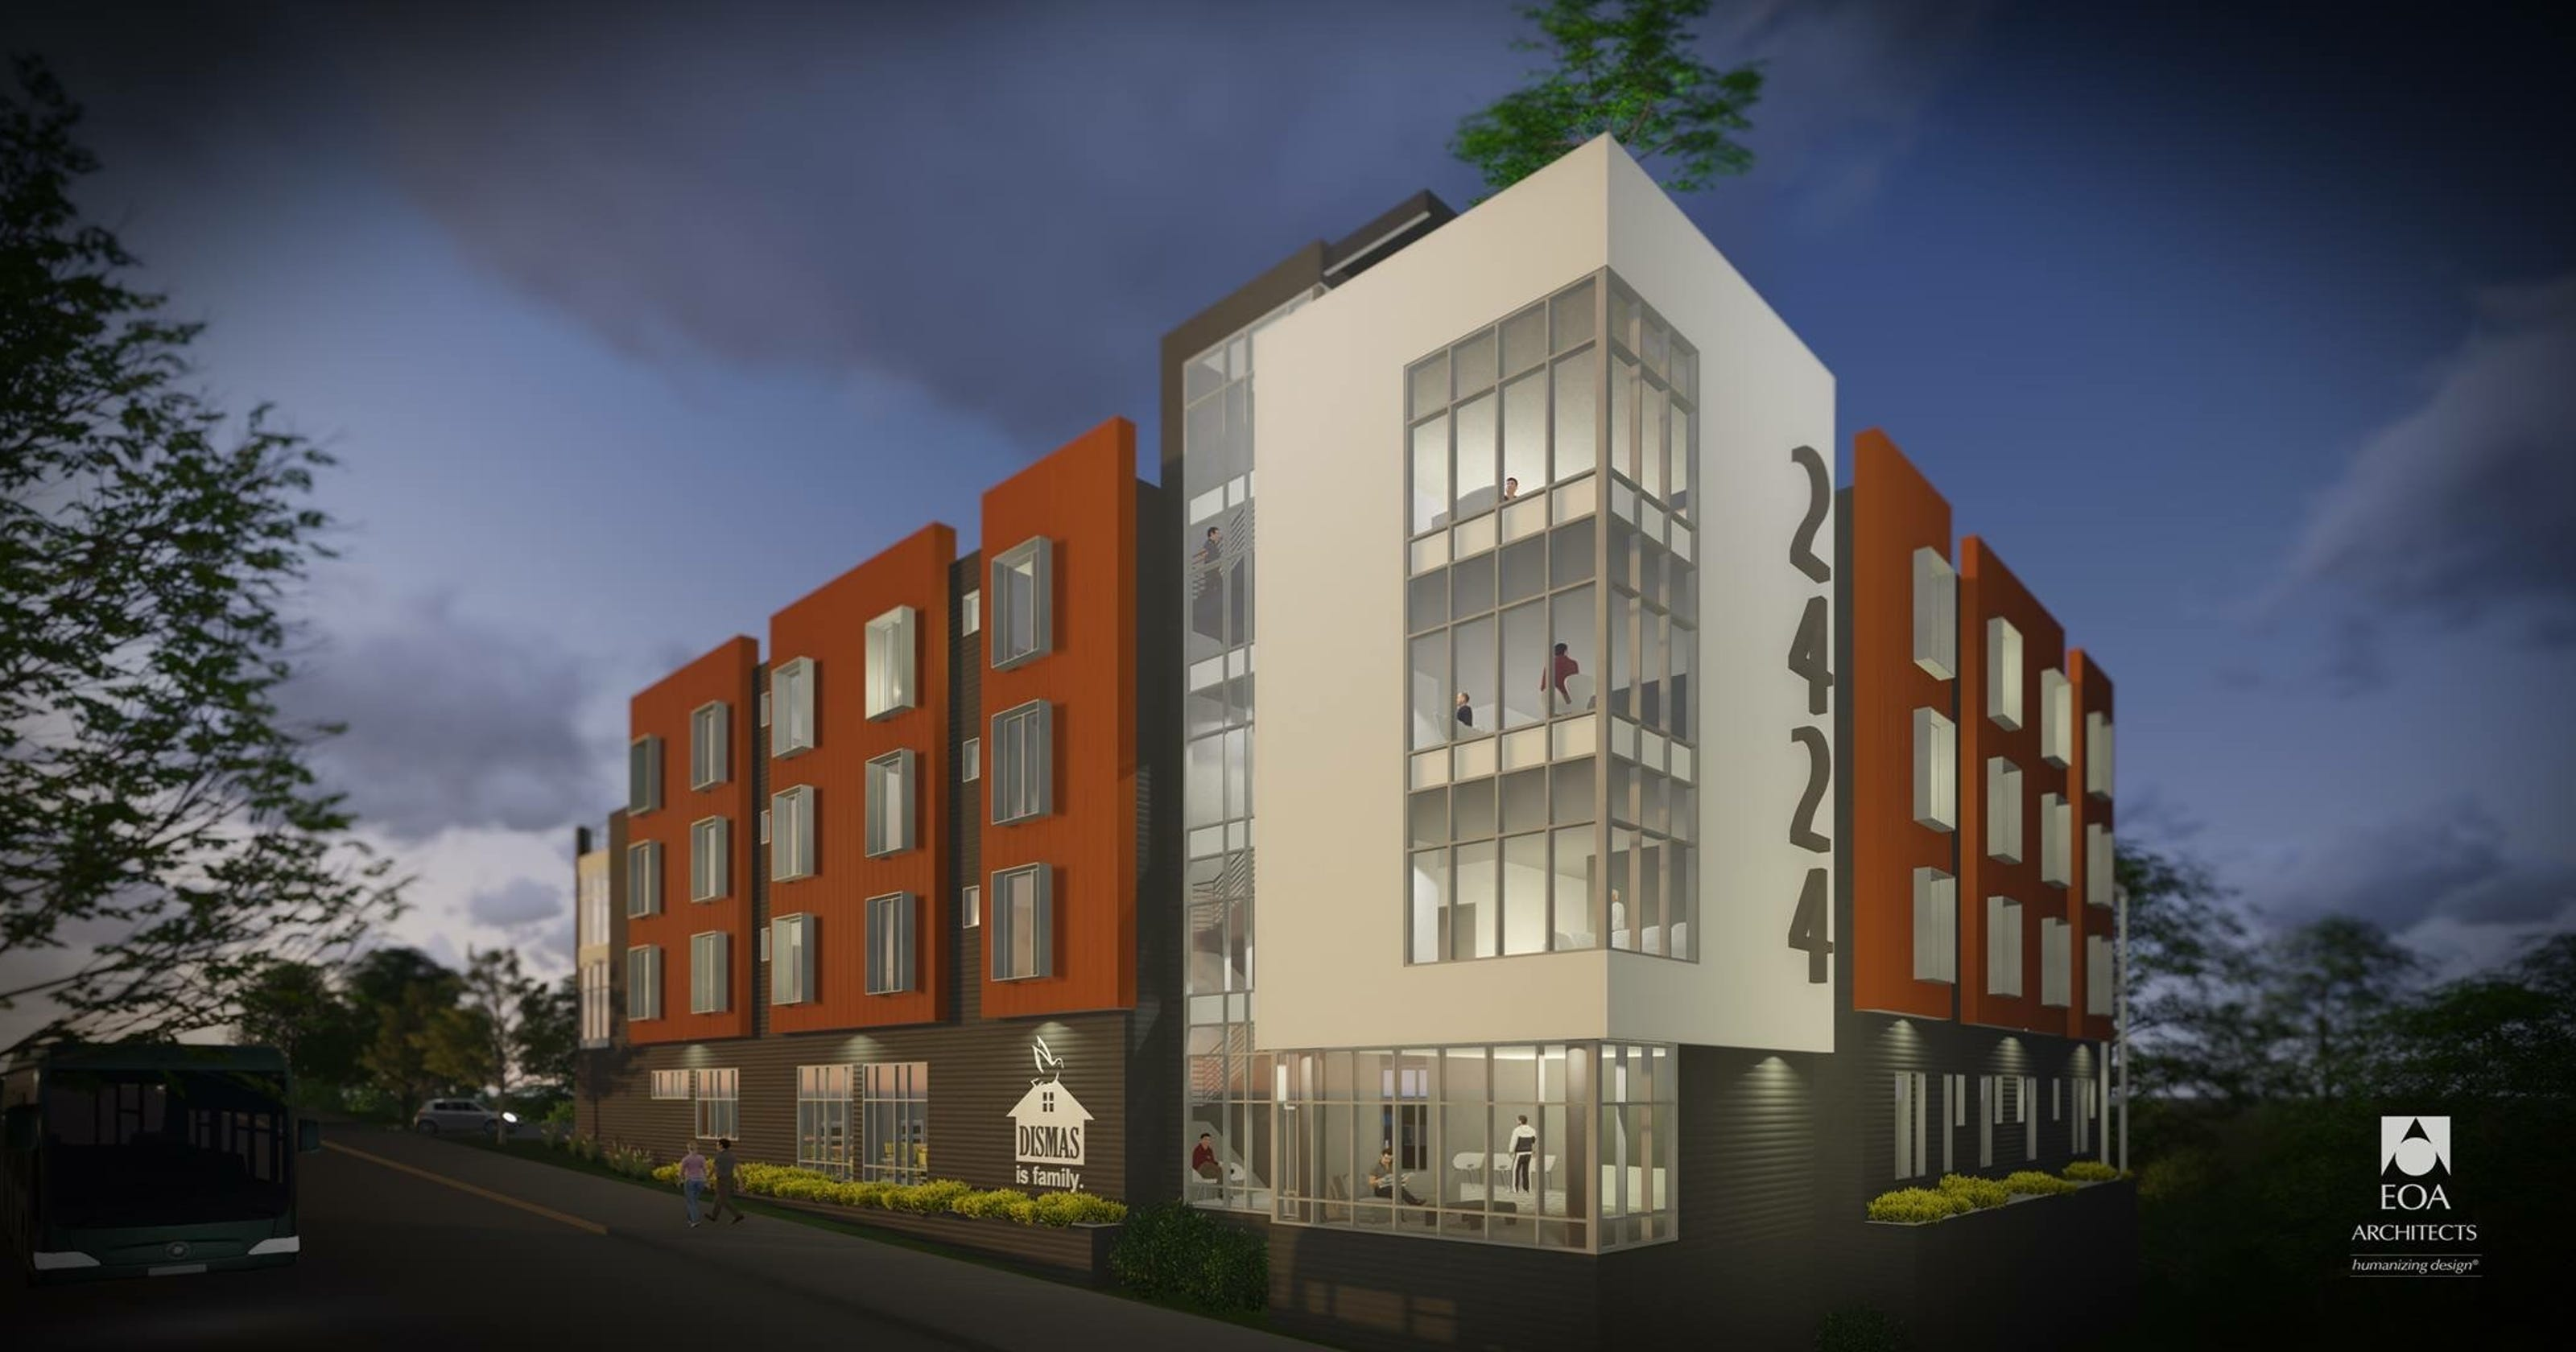 76 bed transitional housing project planned on charlotte avenue - What is a transitional home ...